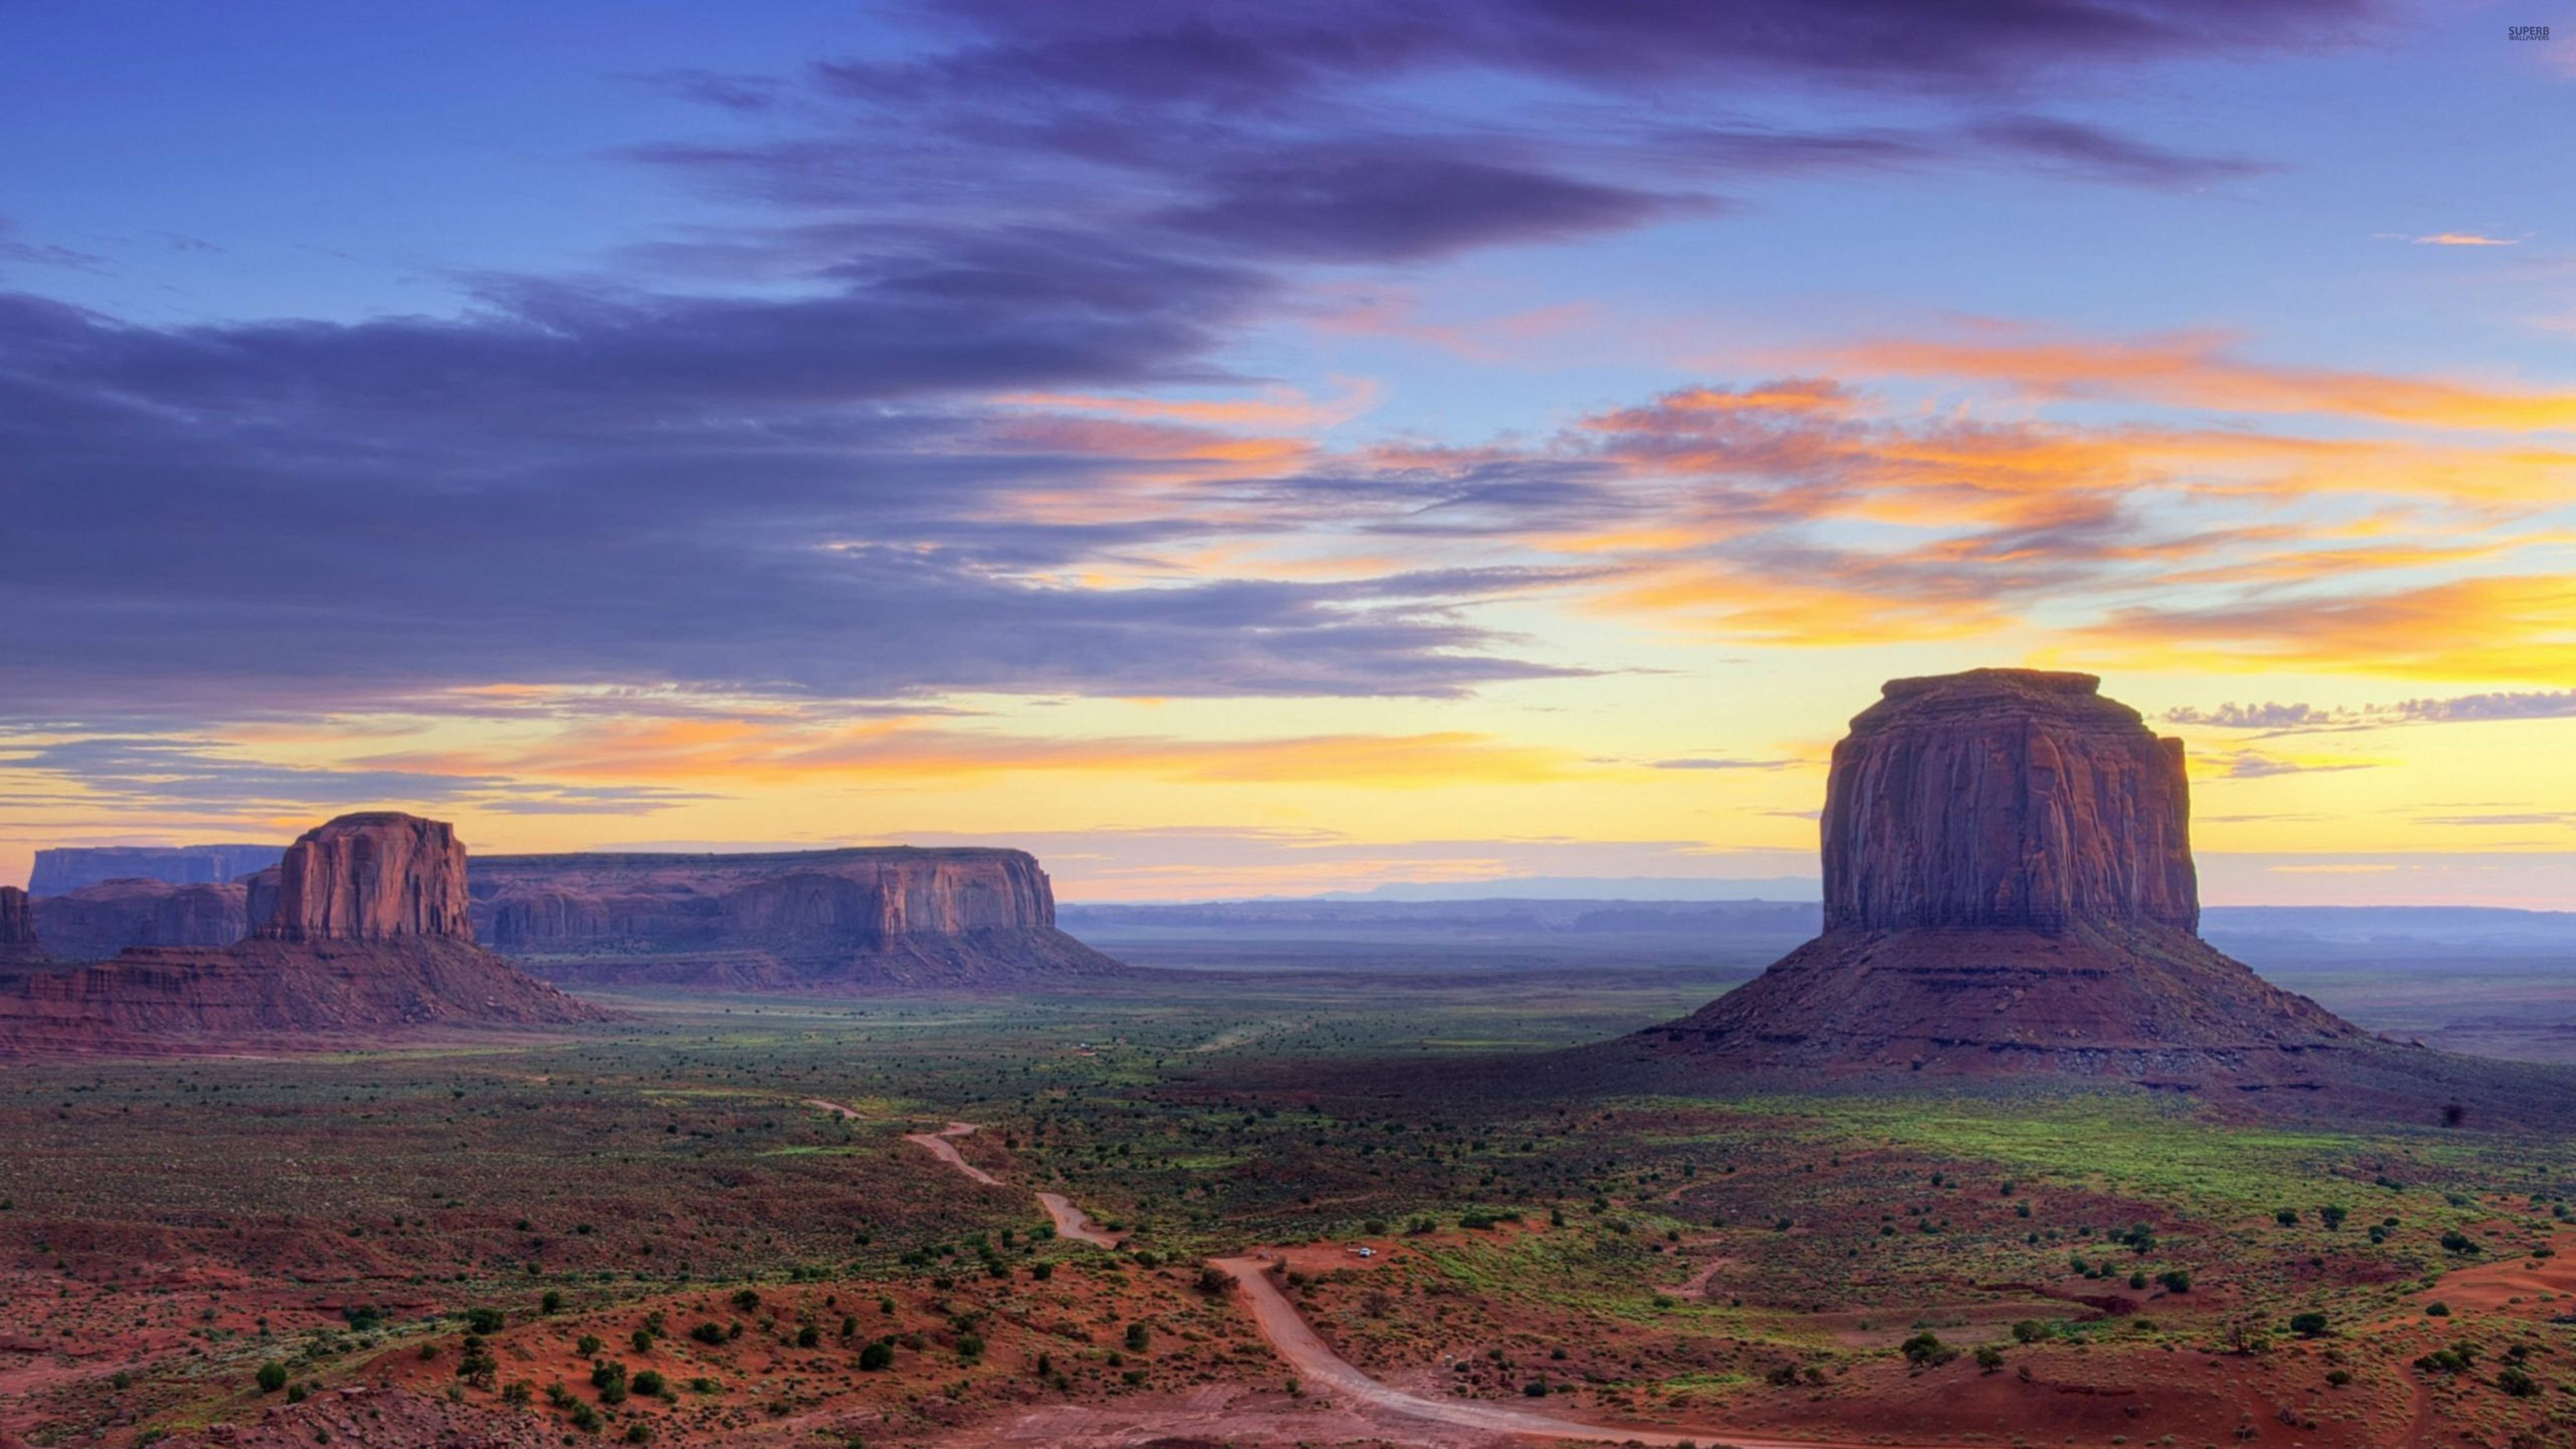 Monument valley 28441 3840x2160 wallpaper 3840x2160 317498 3840x2160